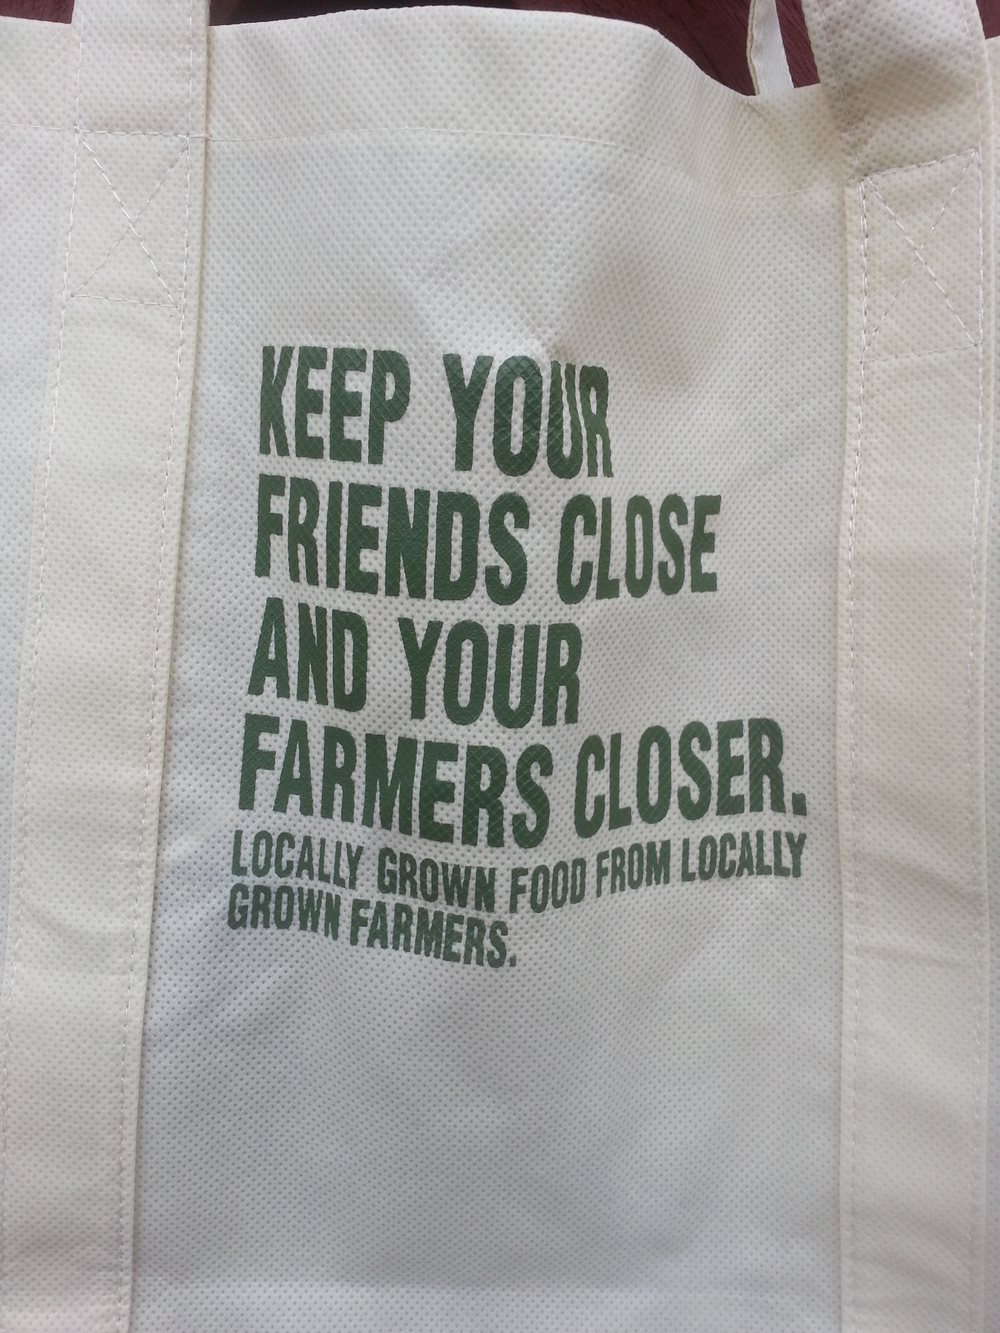 Truer words were never printed on a tote.